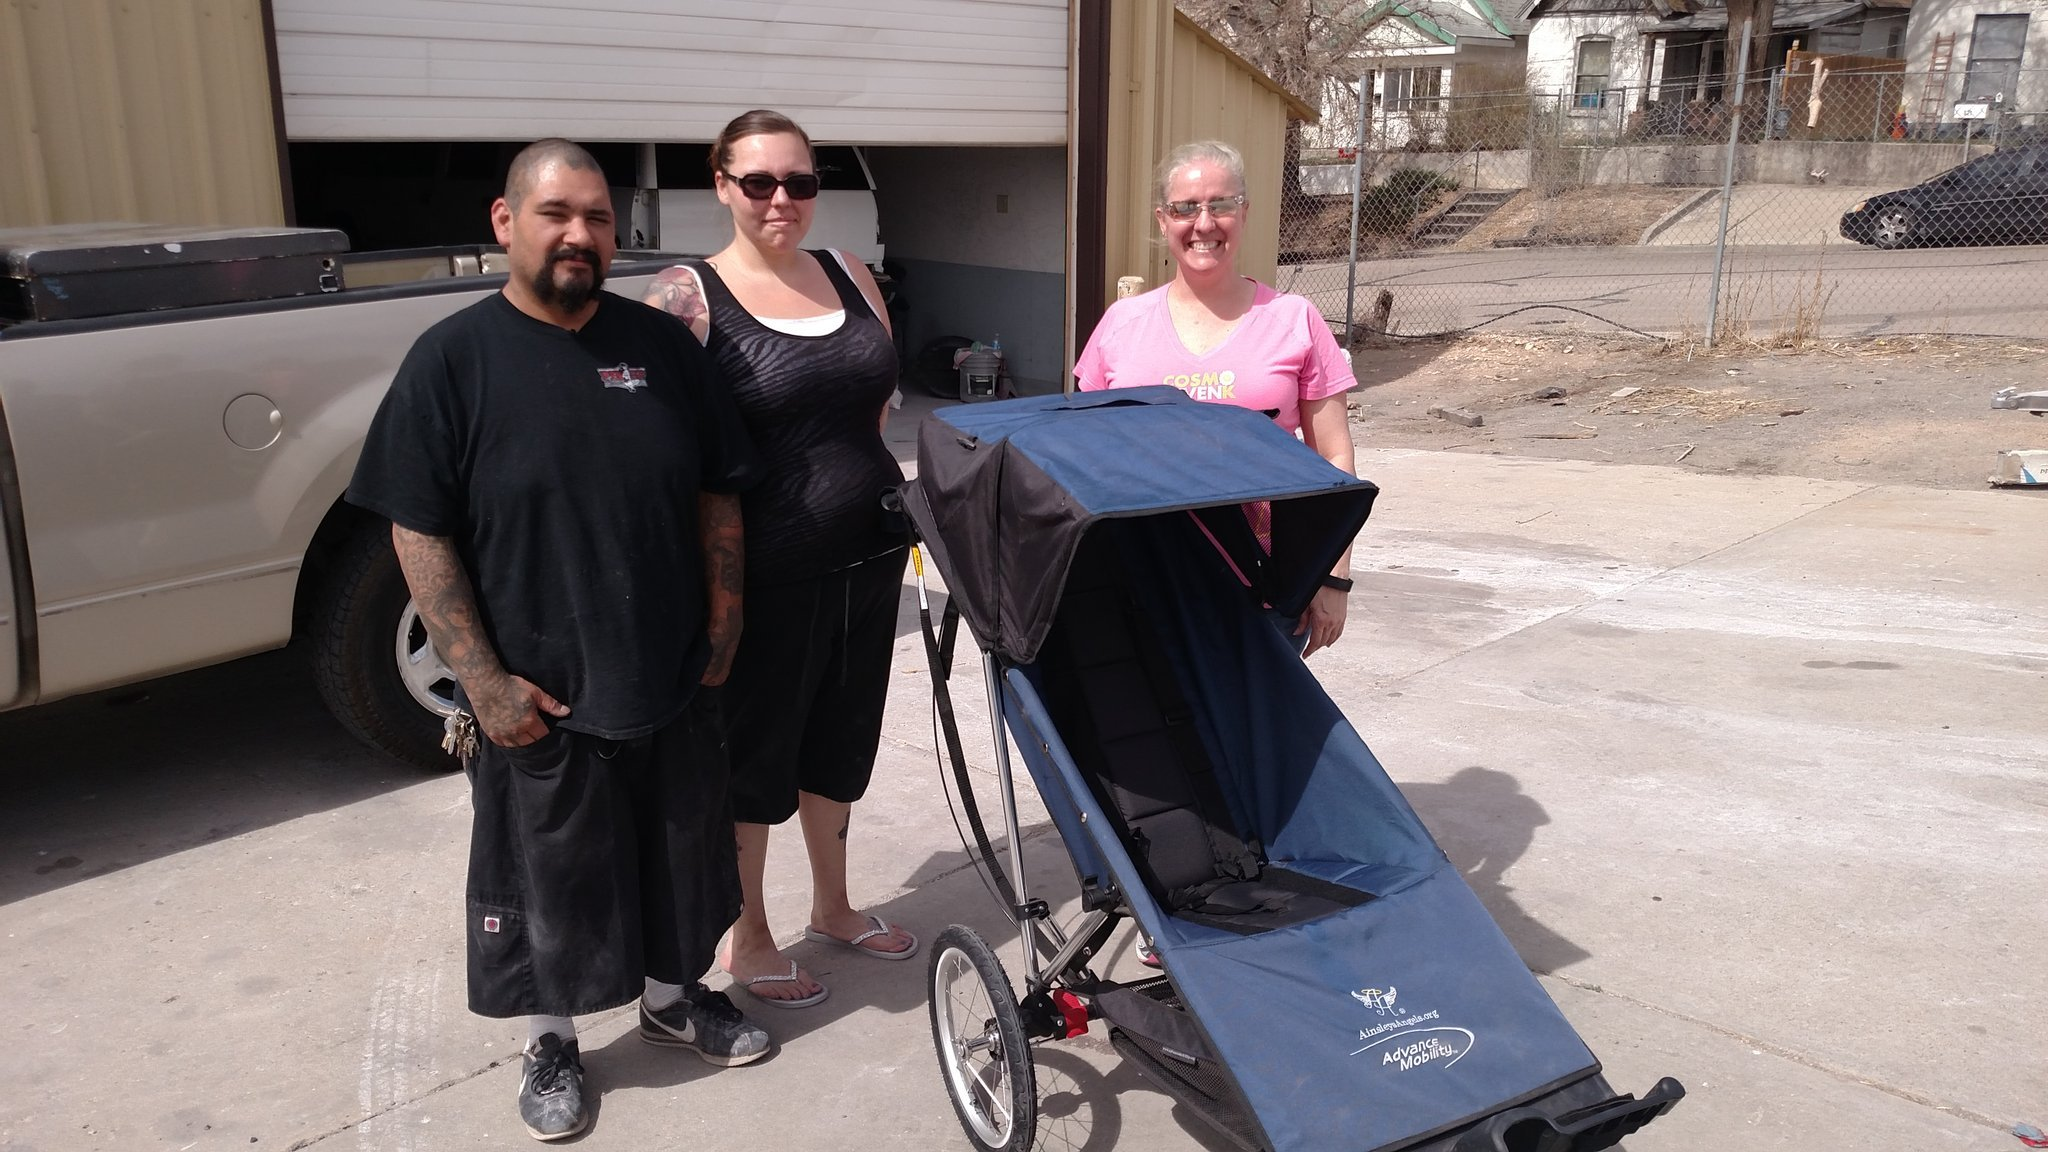 A stroller stolen in Pueblo was returned to the family Monday afternoon. (KOAA)